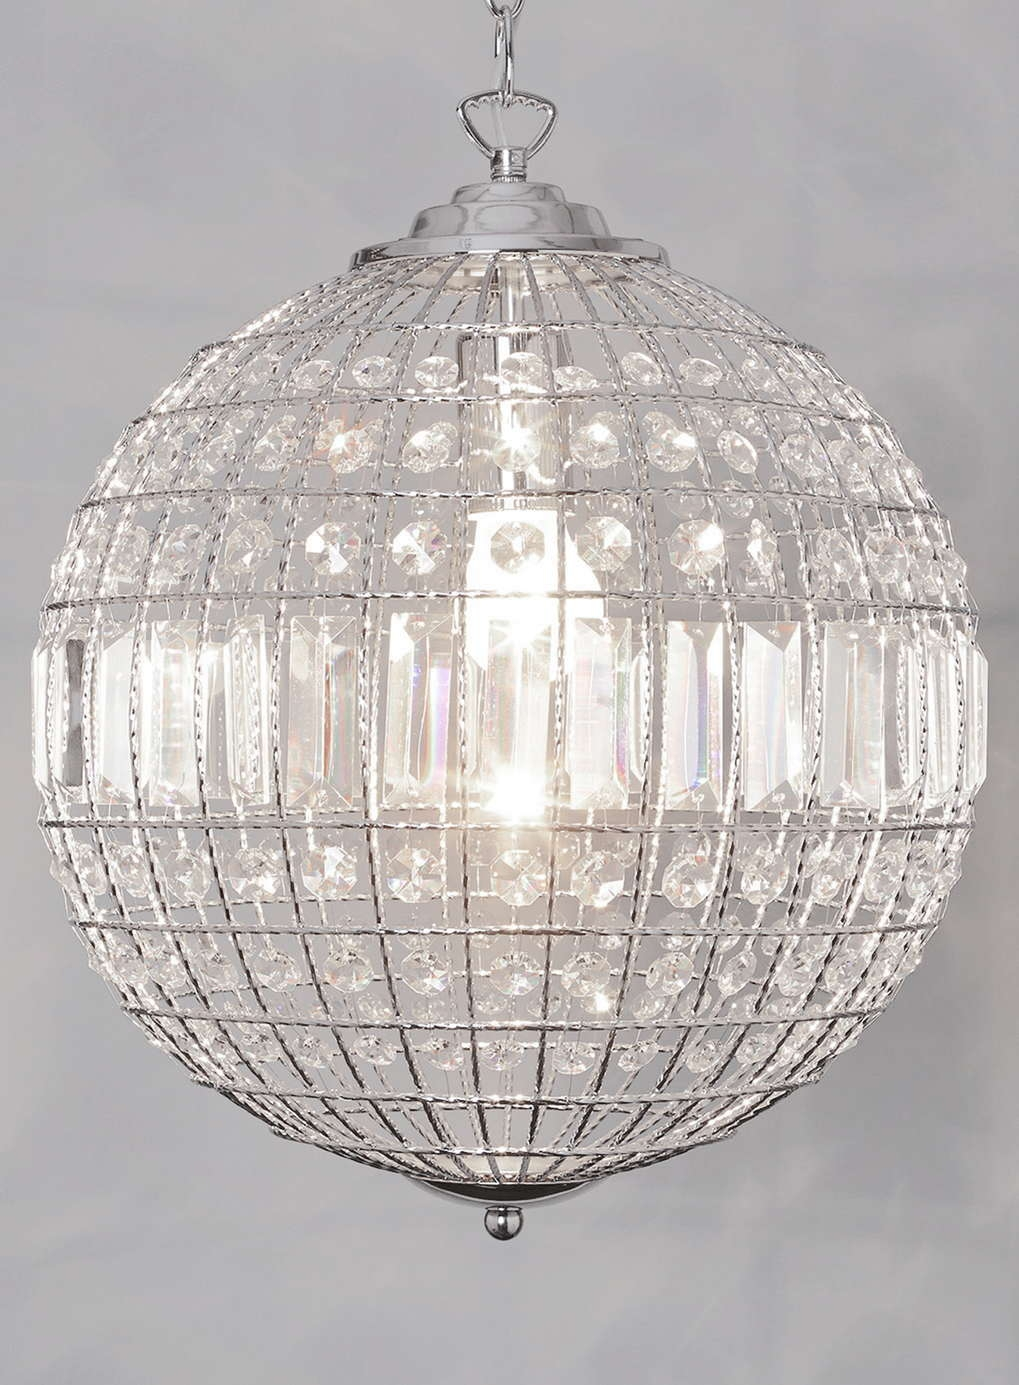 Crystal Globe Pendant Light Roselawnlutheran Within Globe Crystal Chandelier (View 13 of 15)